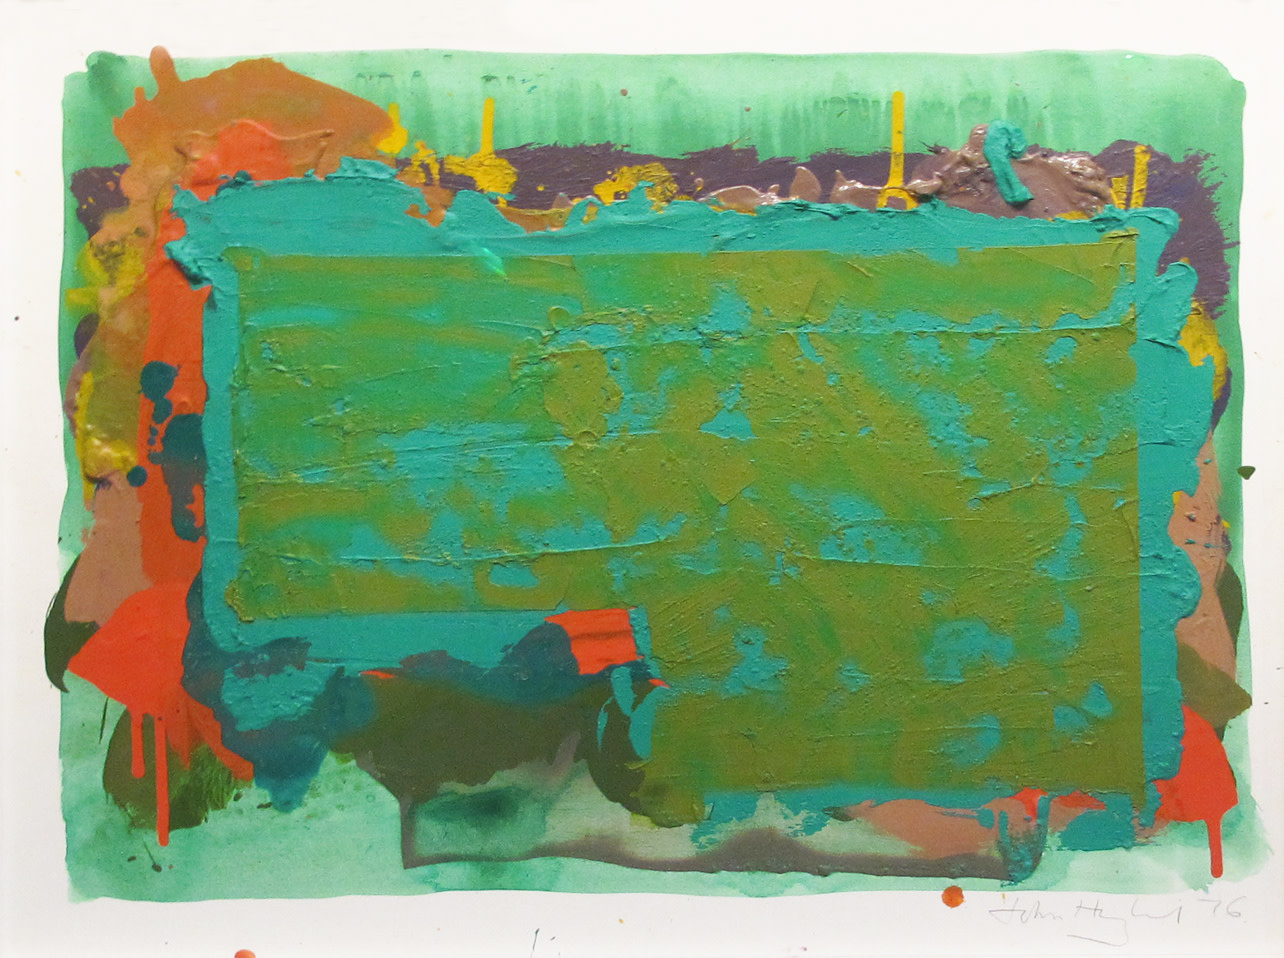 <span class=&#34;link fancybox-details-link&#34;><a href=&#34;/artists/131-john-hoyland/works/781/&#34;>View Detail Page</a></span><div class=&#34;artist&#34;><strong>John Hoyland</strong></div> 1934-2011 <div class=&#34;title&#34;><em>Untitled 1976</em></div> <div class=&#34;signed_and_dated&#34;>signed and dated '76</div> <div class=&#34;medium&#34;>acrylic on paper</div> <div class=&#34;dimensions&#34;>56 x 76 cms (22 x 30 ins)</div>